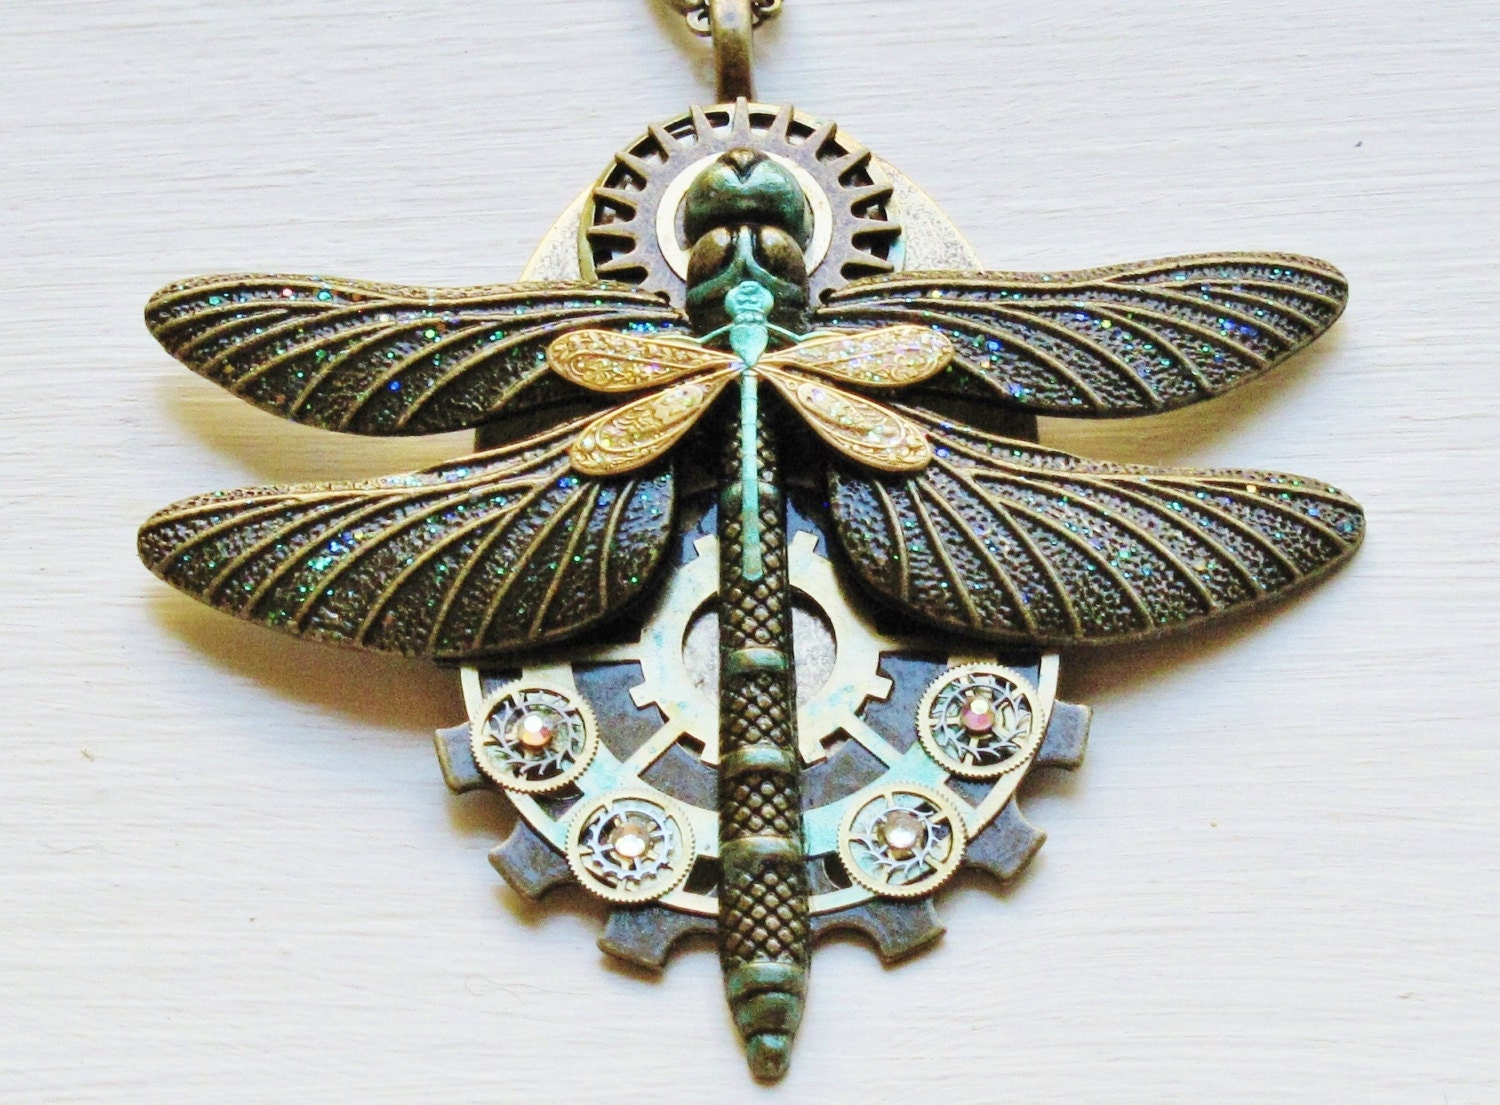 Steampunk Dragonfly & Gear Pendant Necklace Double Dragonfly